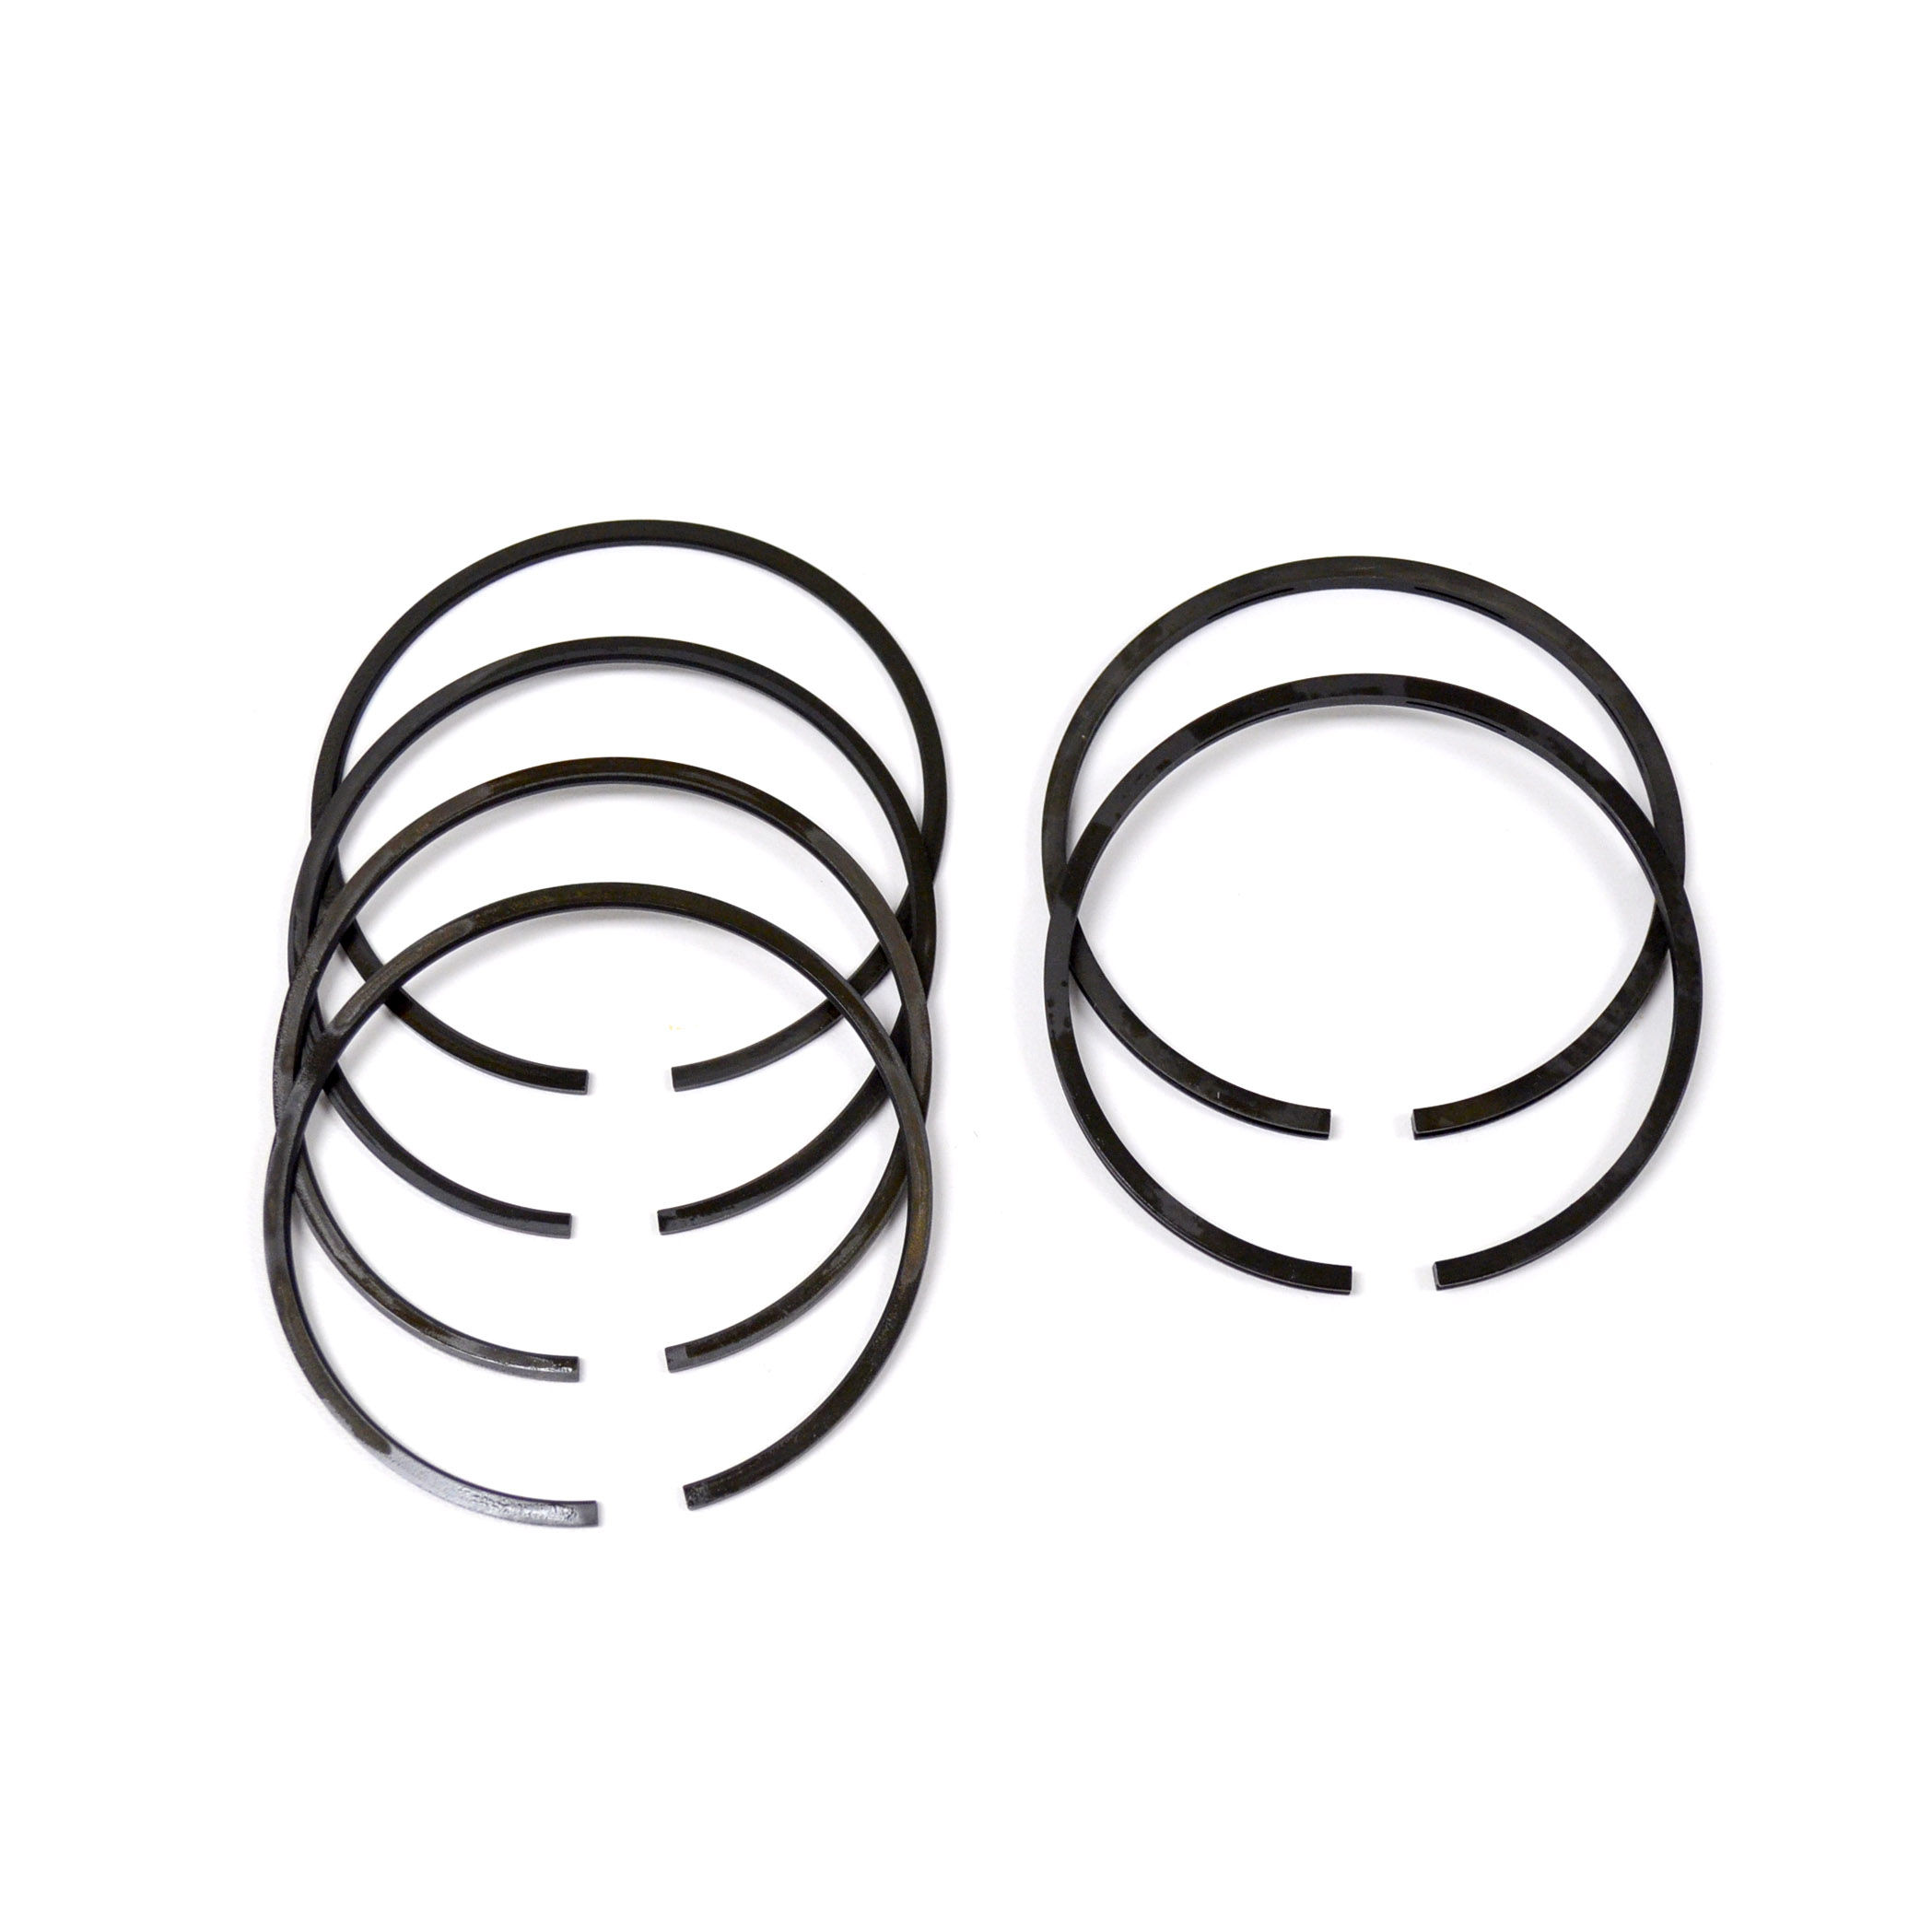 Triumph Tr6 T120 650 Tai Economy Piston Ring Set 040